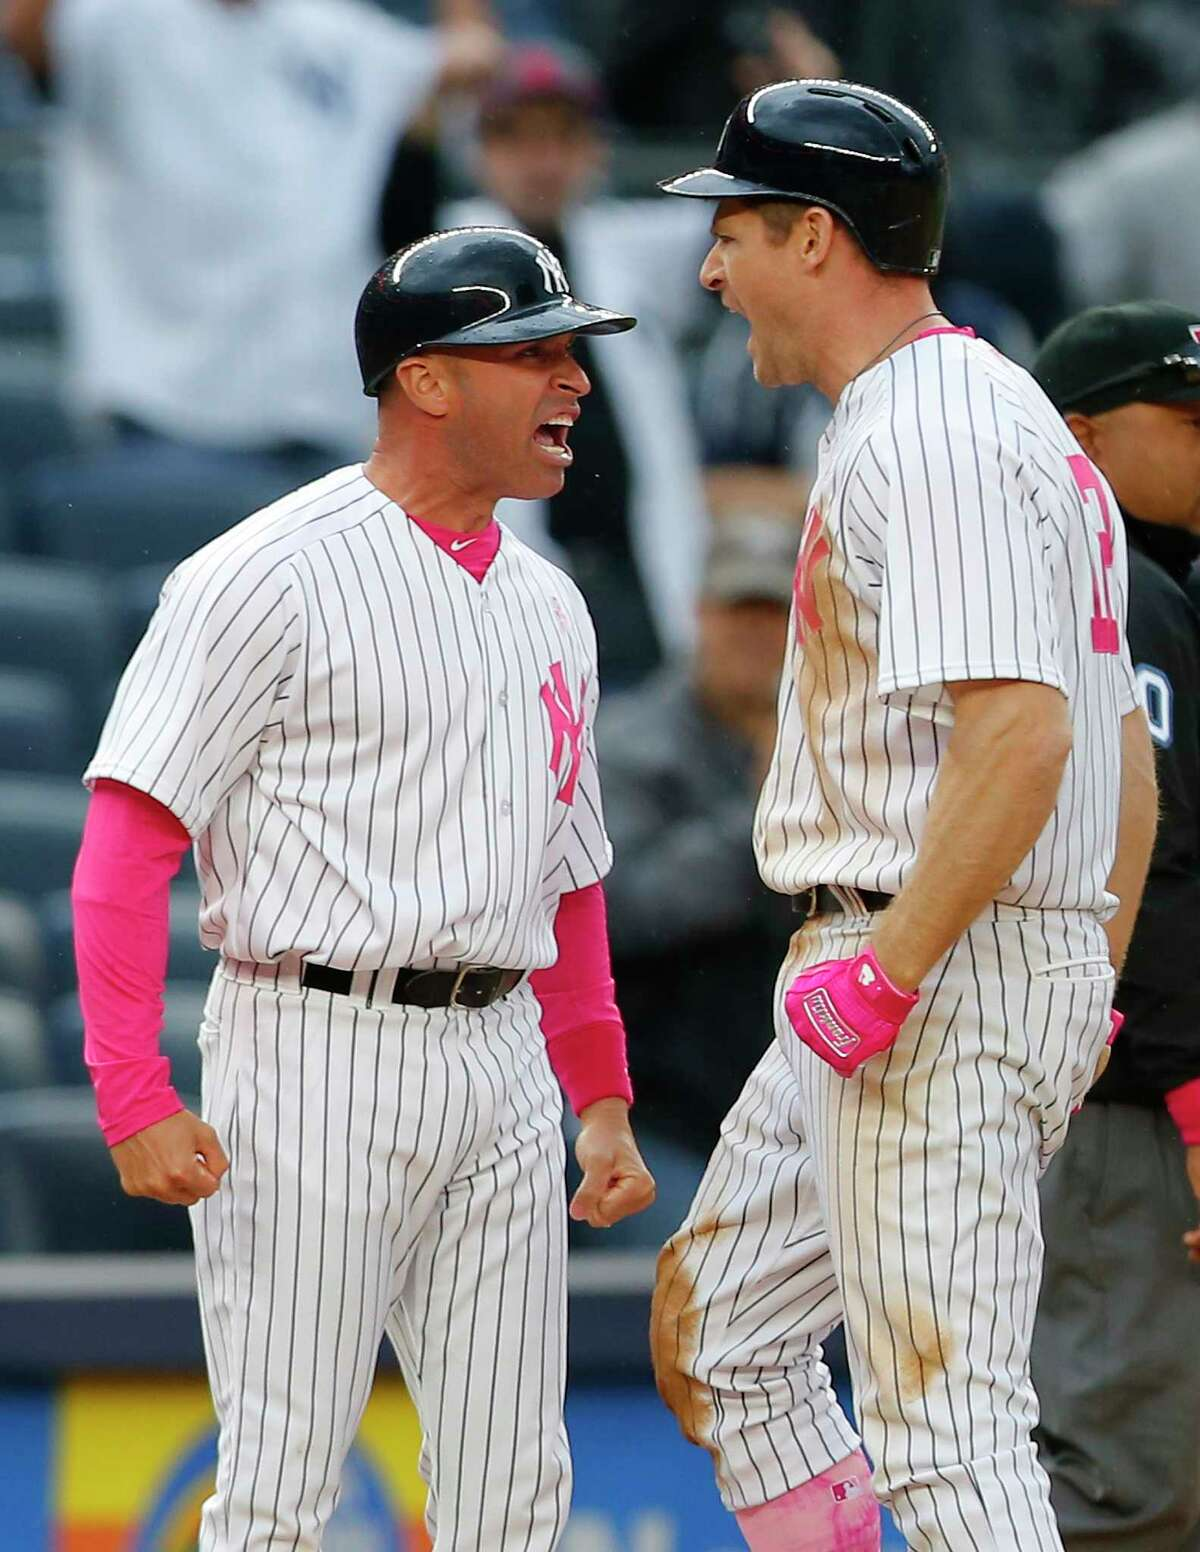 NEW YORK, NY - MAY 14: Chase Headley #12 of the New York Yankees reacts with third base coach Joe Espada #53 after he hit a bases loaded triple during the seventh inning against the Houston Astros during game one of a doubleheader at Yankee Stadium on May 14, 2017 in New York City. Players are wearing pink to celebrate Mother's Day weekend and support breast cancer awareness.